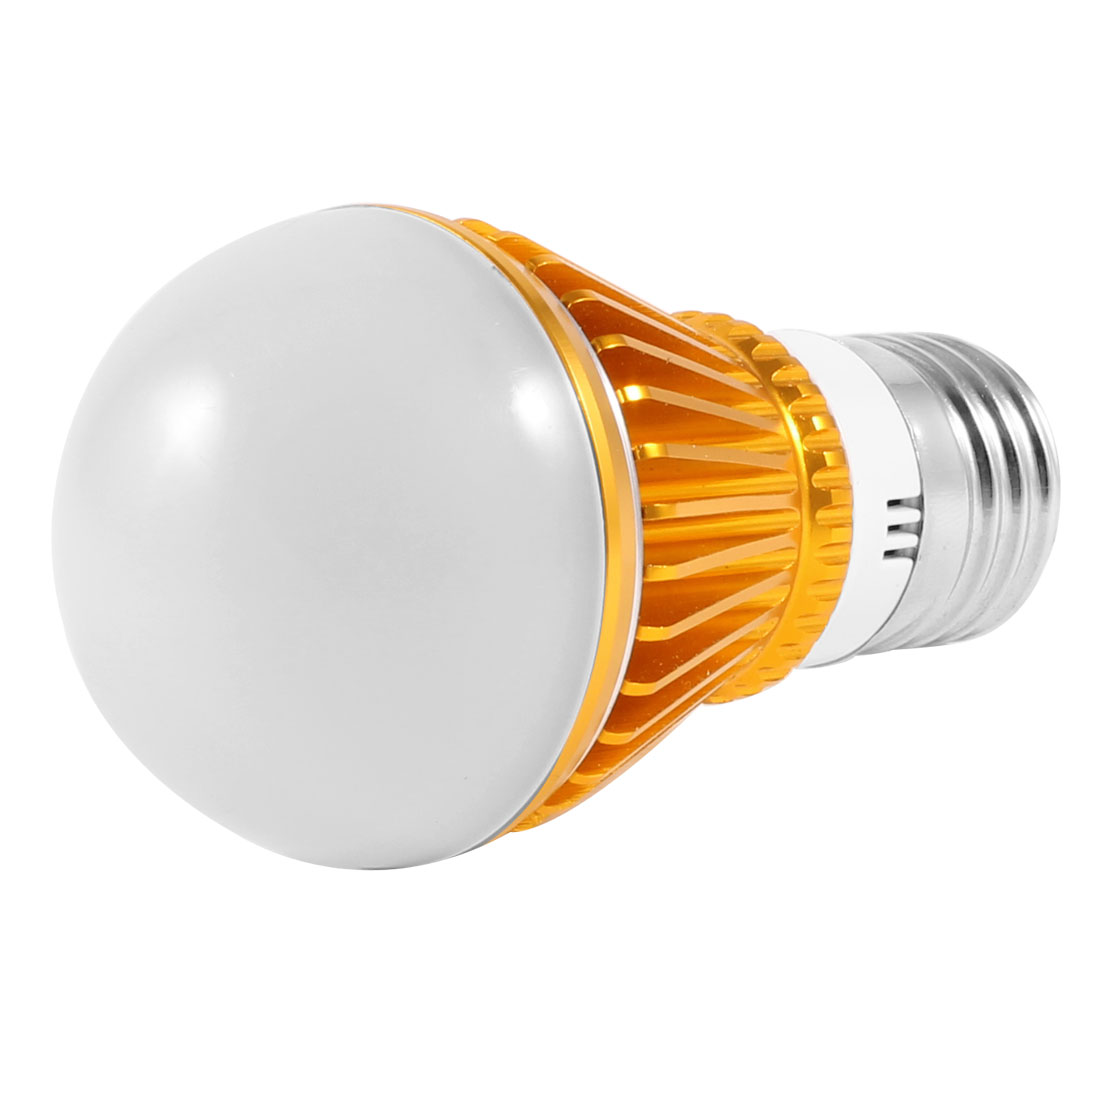 "Indoor Home 3W 220V E27 Socket Warm White LED Globe Ball Bulb 2"" Dia"